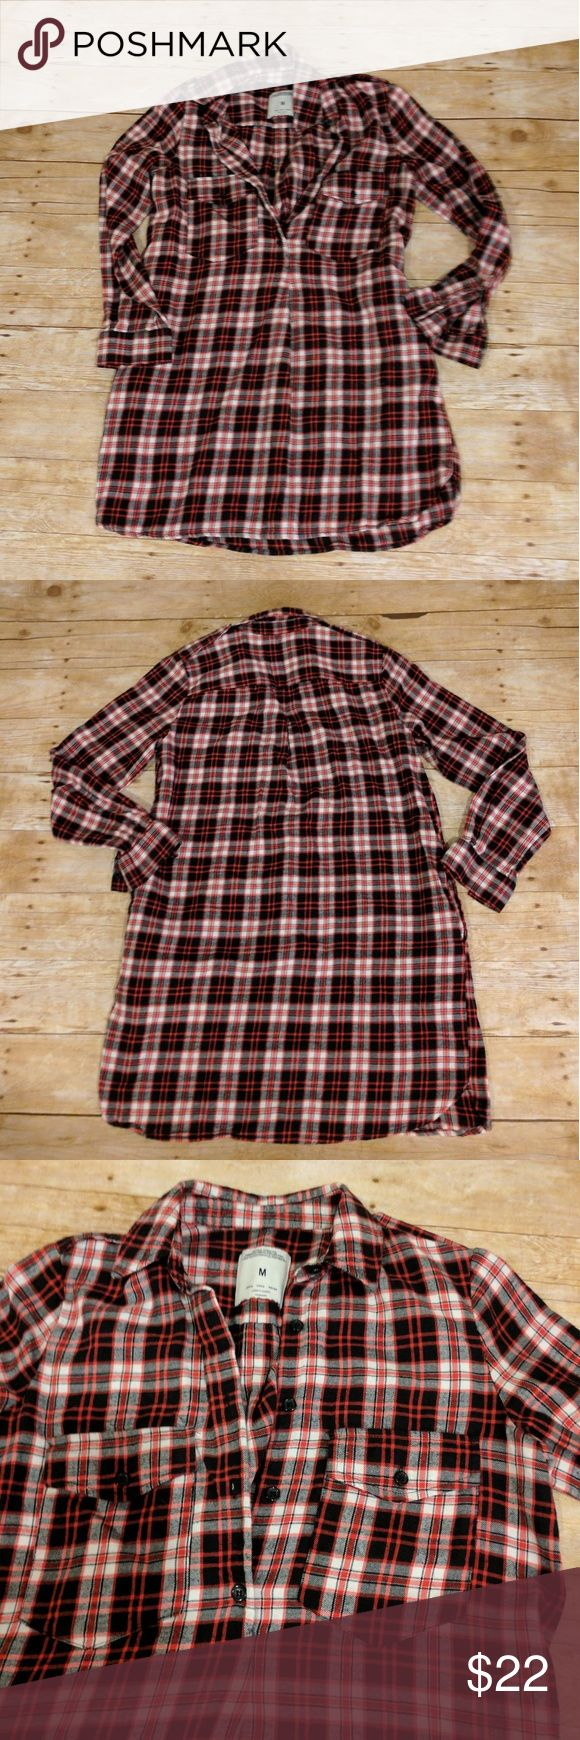 Zara Basic Plaid Flannel Tunic Zara Basic Plaid Flannel Tunic * Excellent pre-owned condition * Two front pockets on chest * Two side pockets at hips * Button down * Slight high-low * Epaulets * Size Medium Zara Tops Button Down Shirts